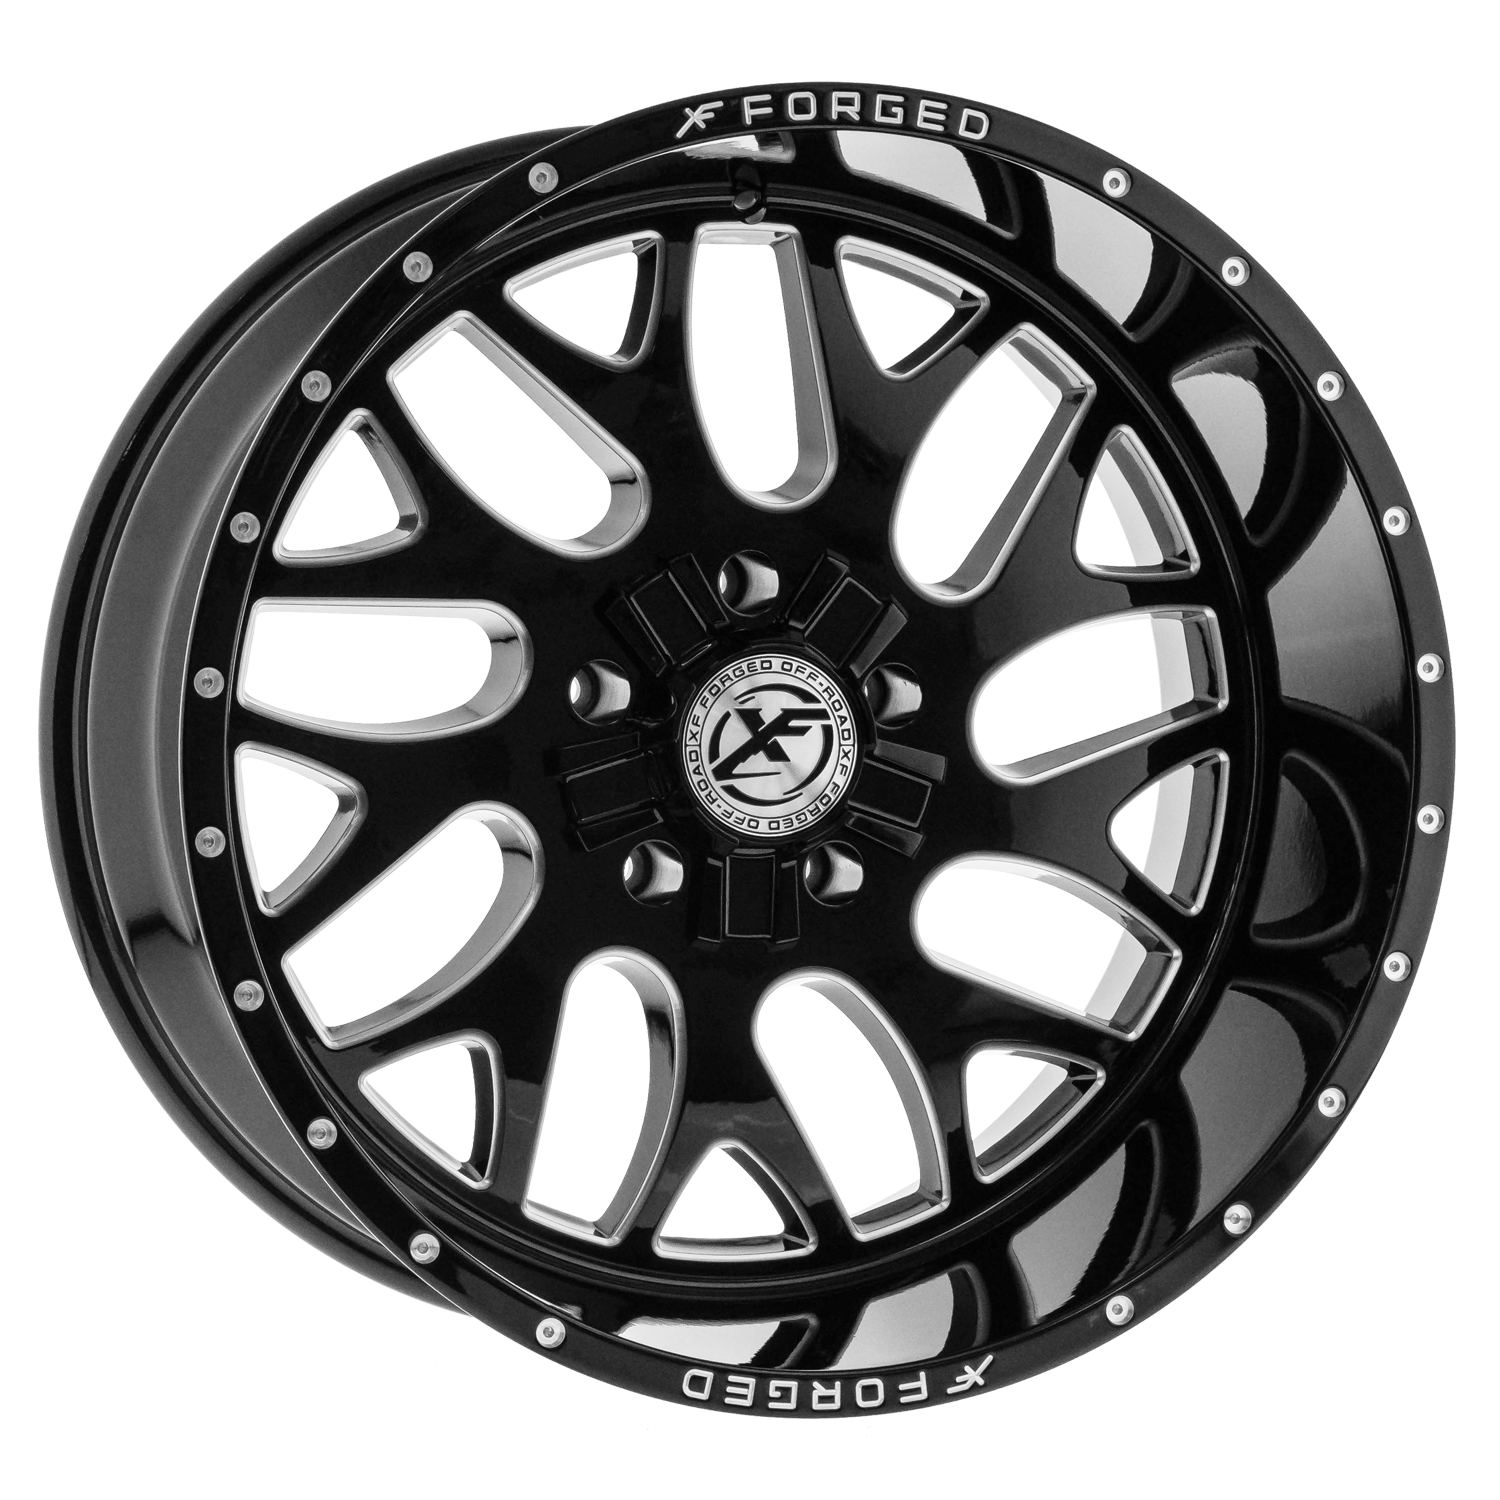 Xf Off Road Flow Forged Xfx 301 East Coast Tires Wheels Equipment